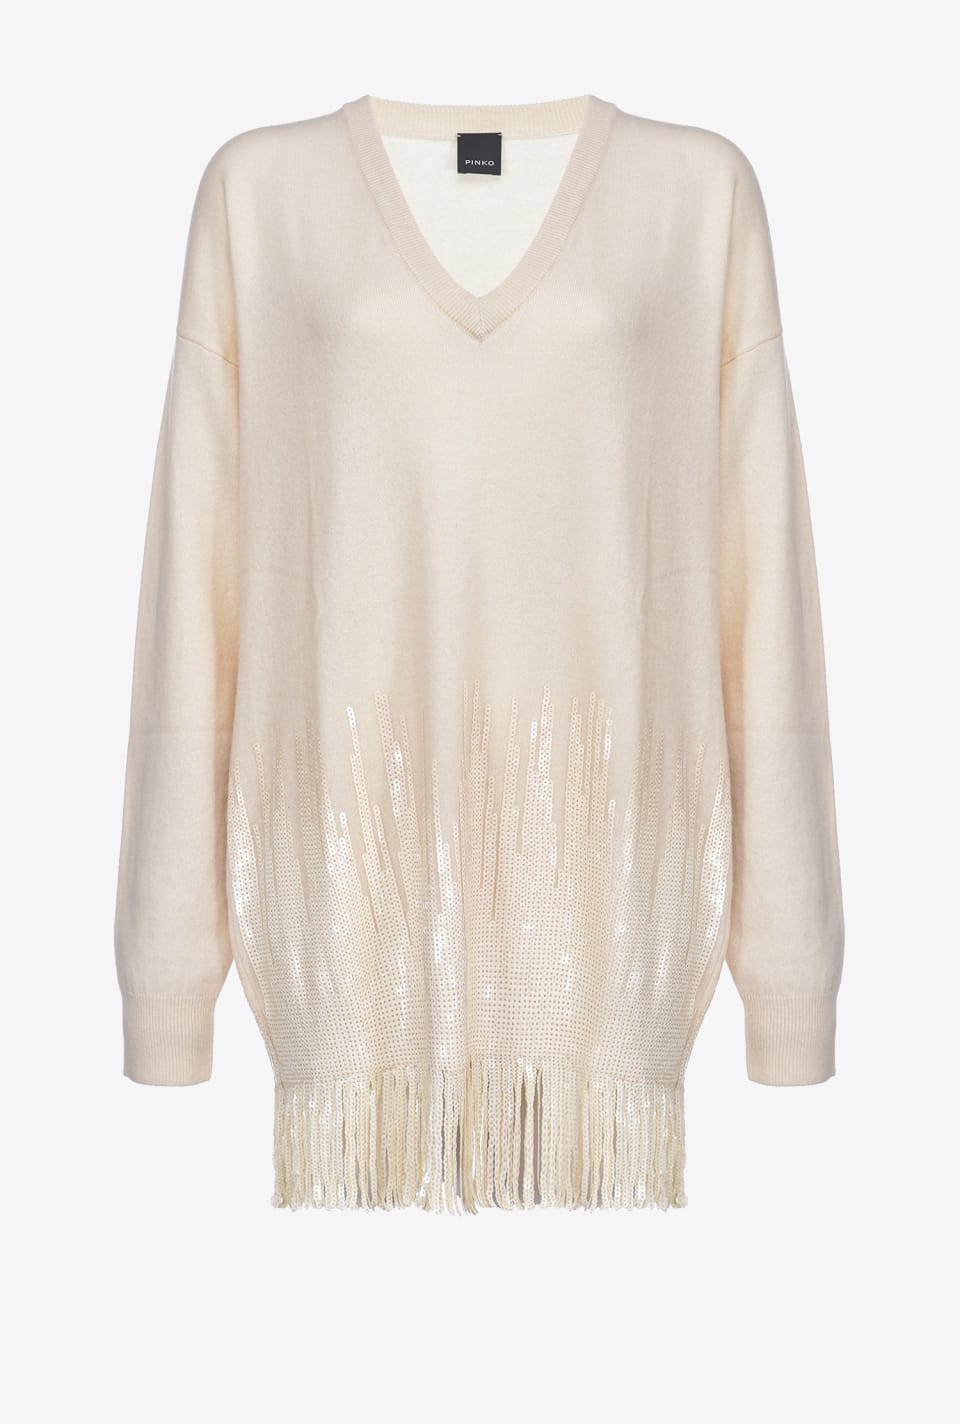 Dress in cashmere and sequins - Pinko